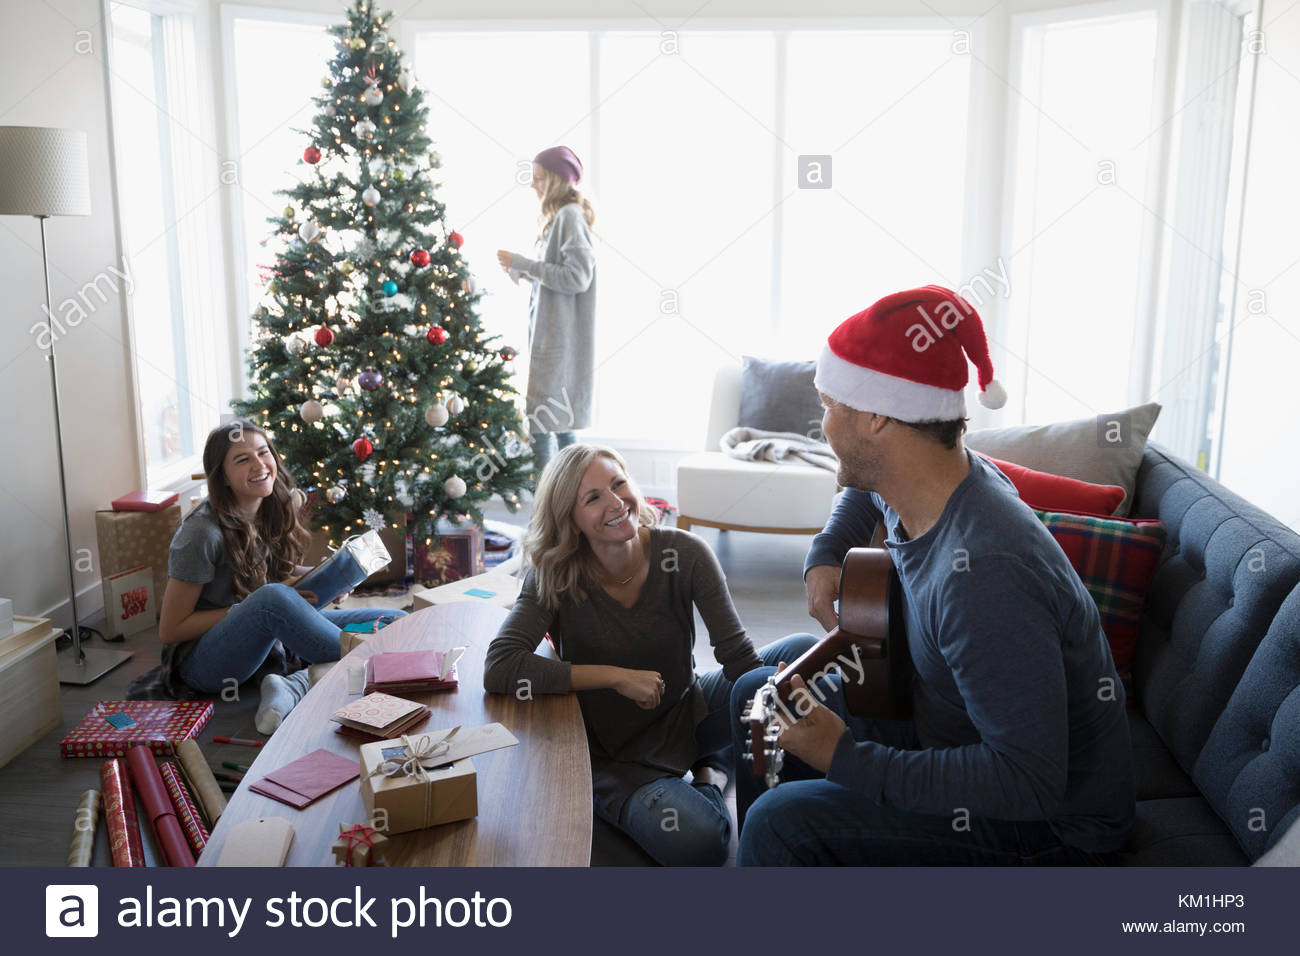 Family playing guitar and wrapping gifts, decorating Christmas tree in living room - Stock Image